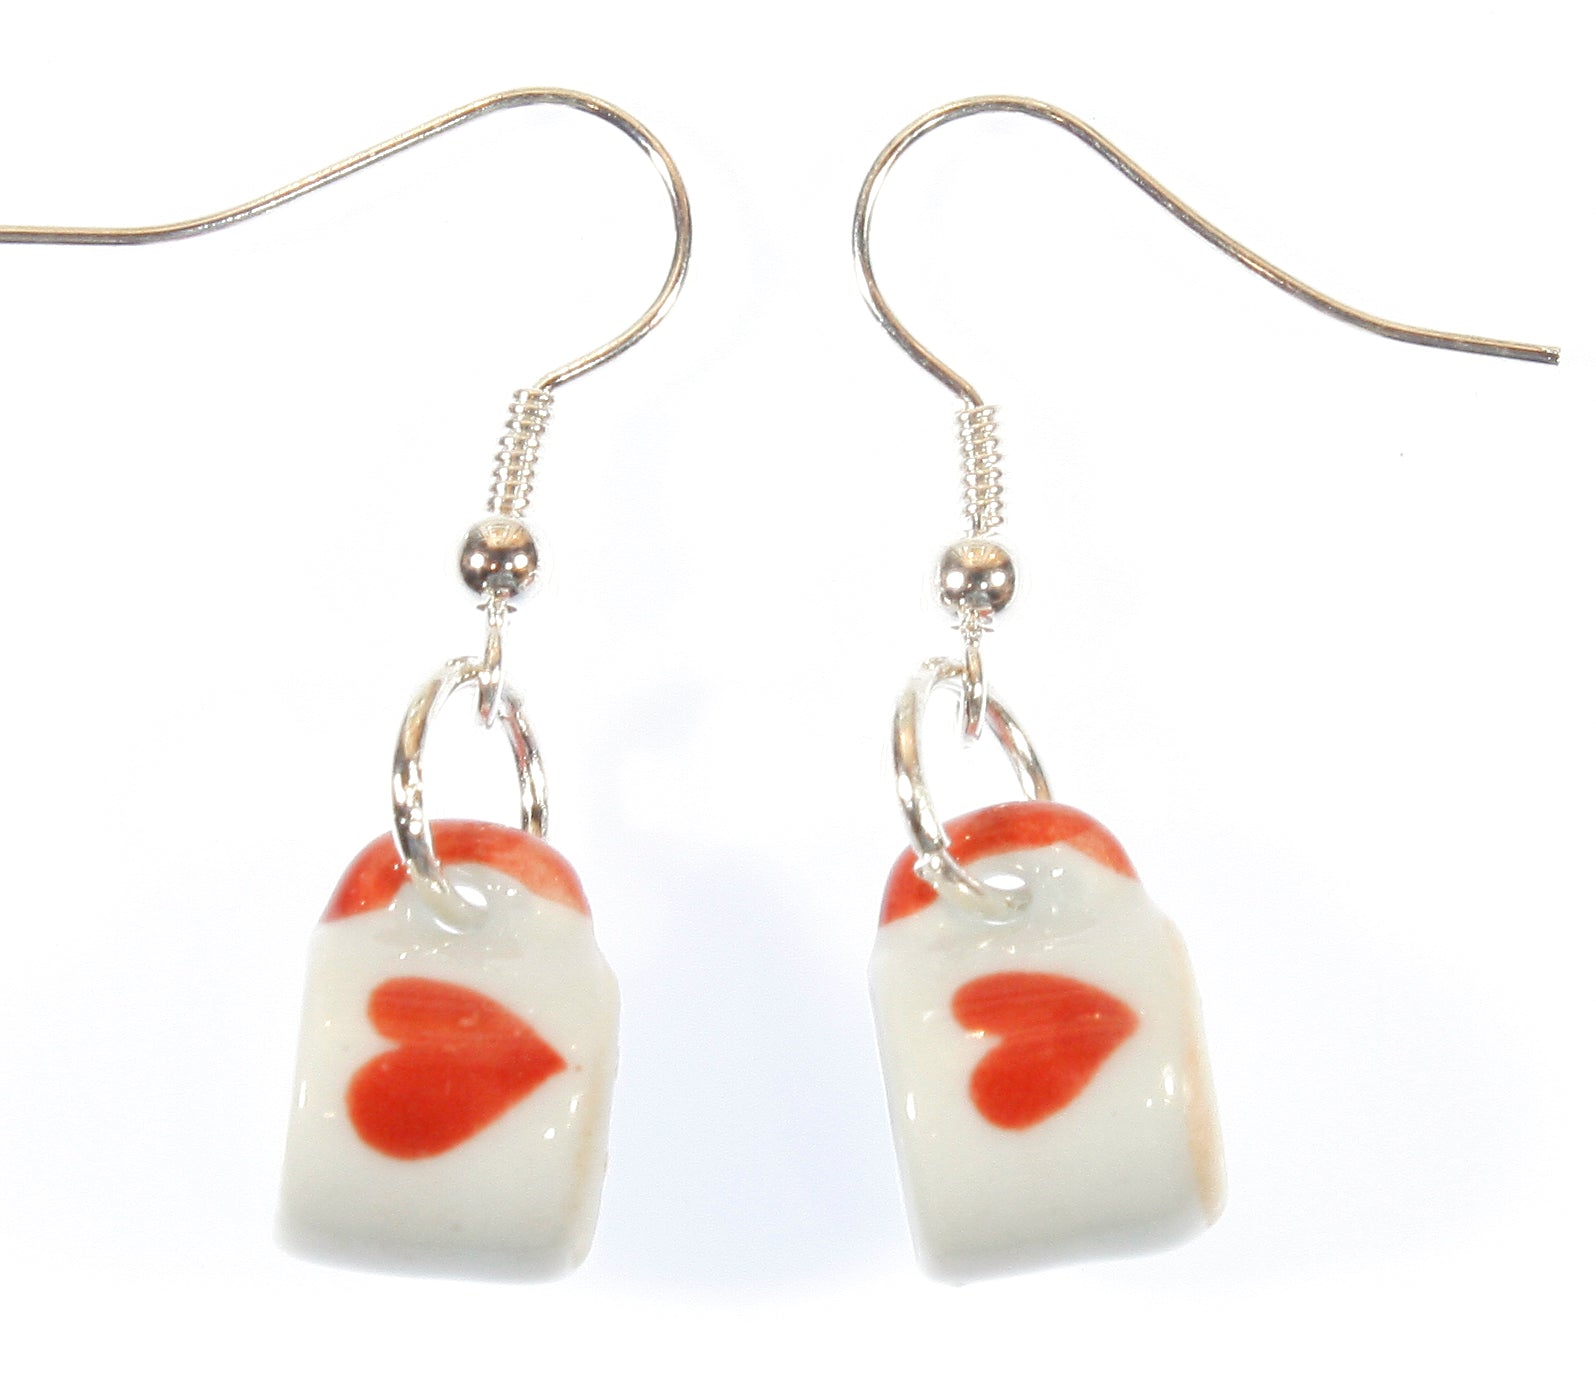 """For the Love of Coffee"" Tiny Porcelain Tea Cup Earrings with Heart"